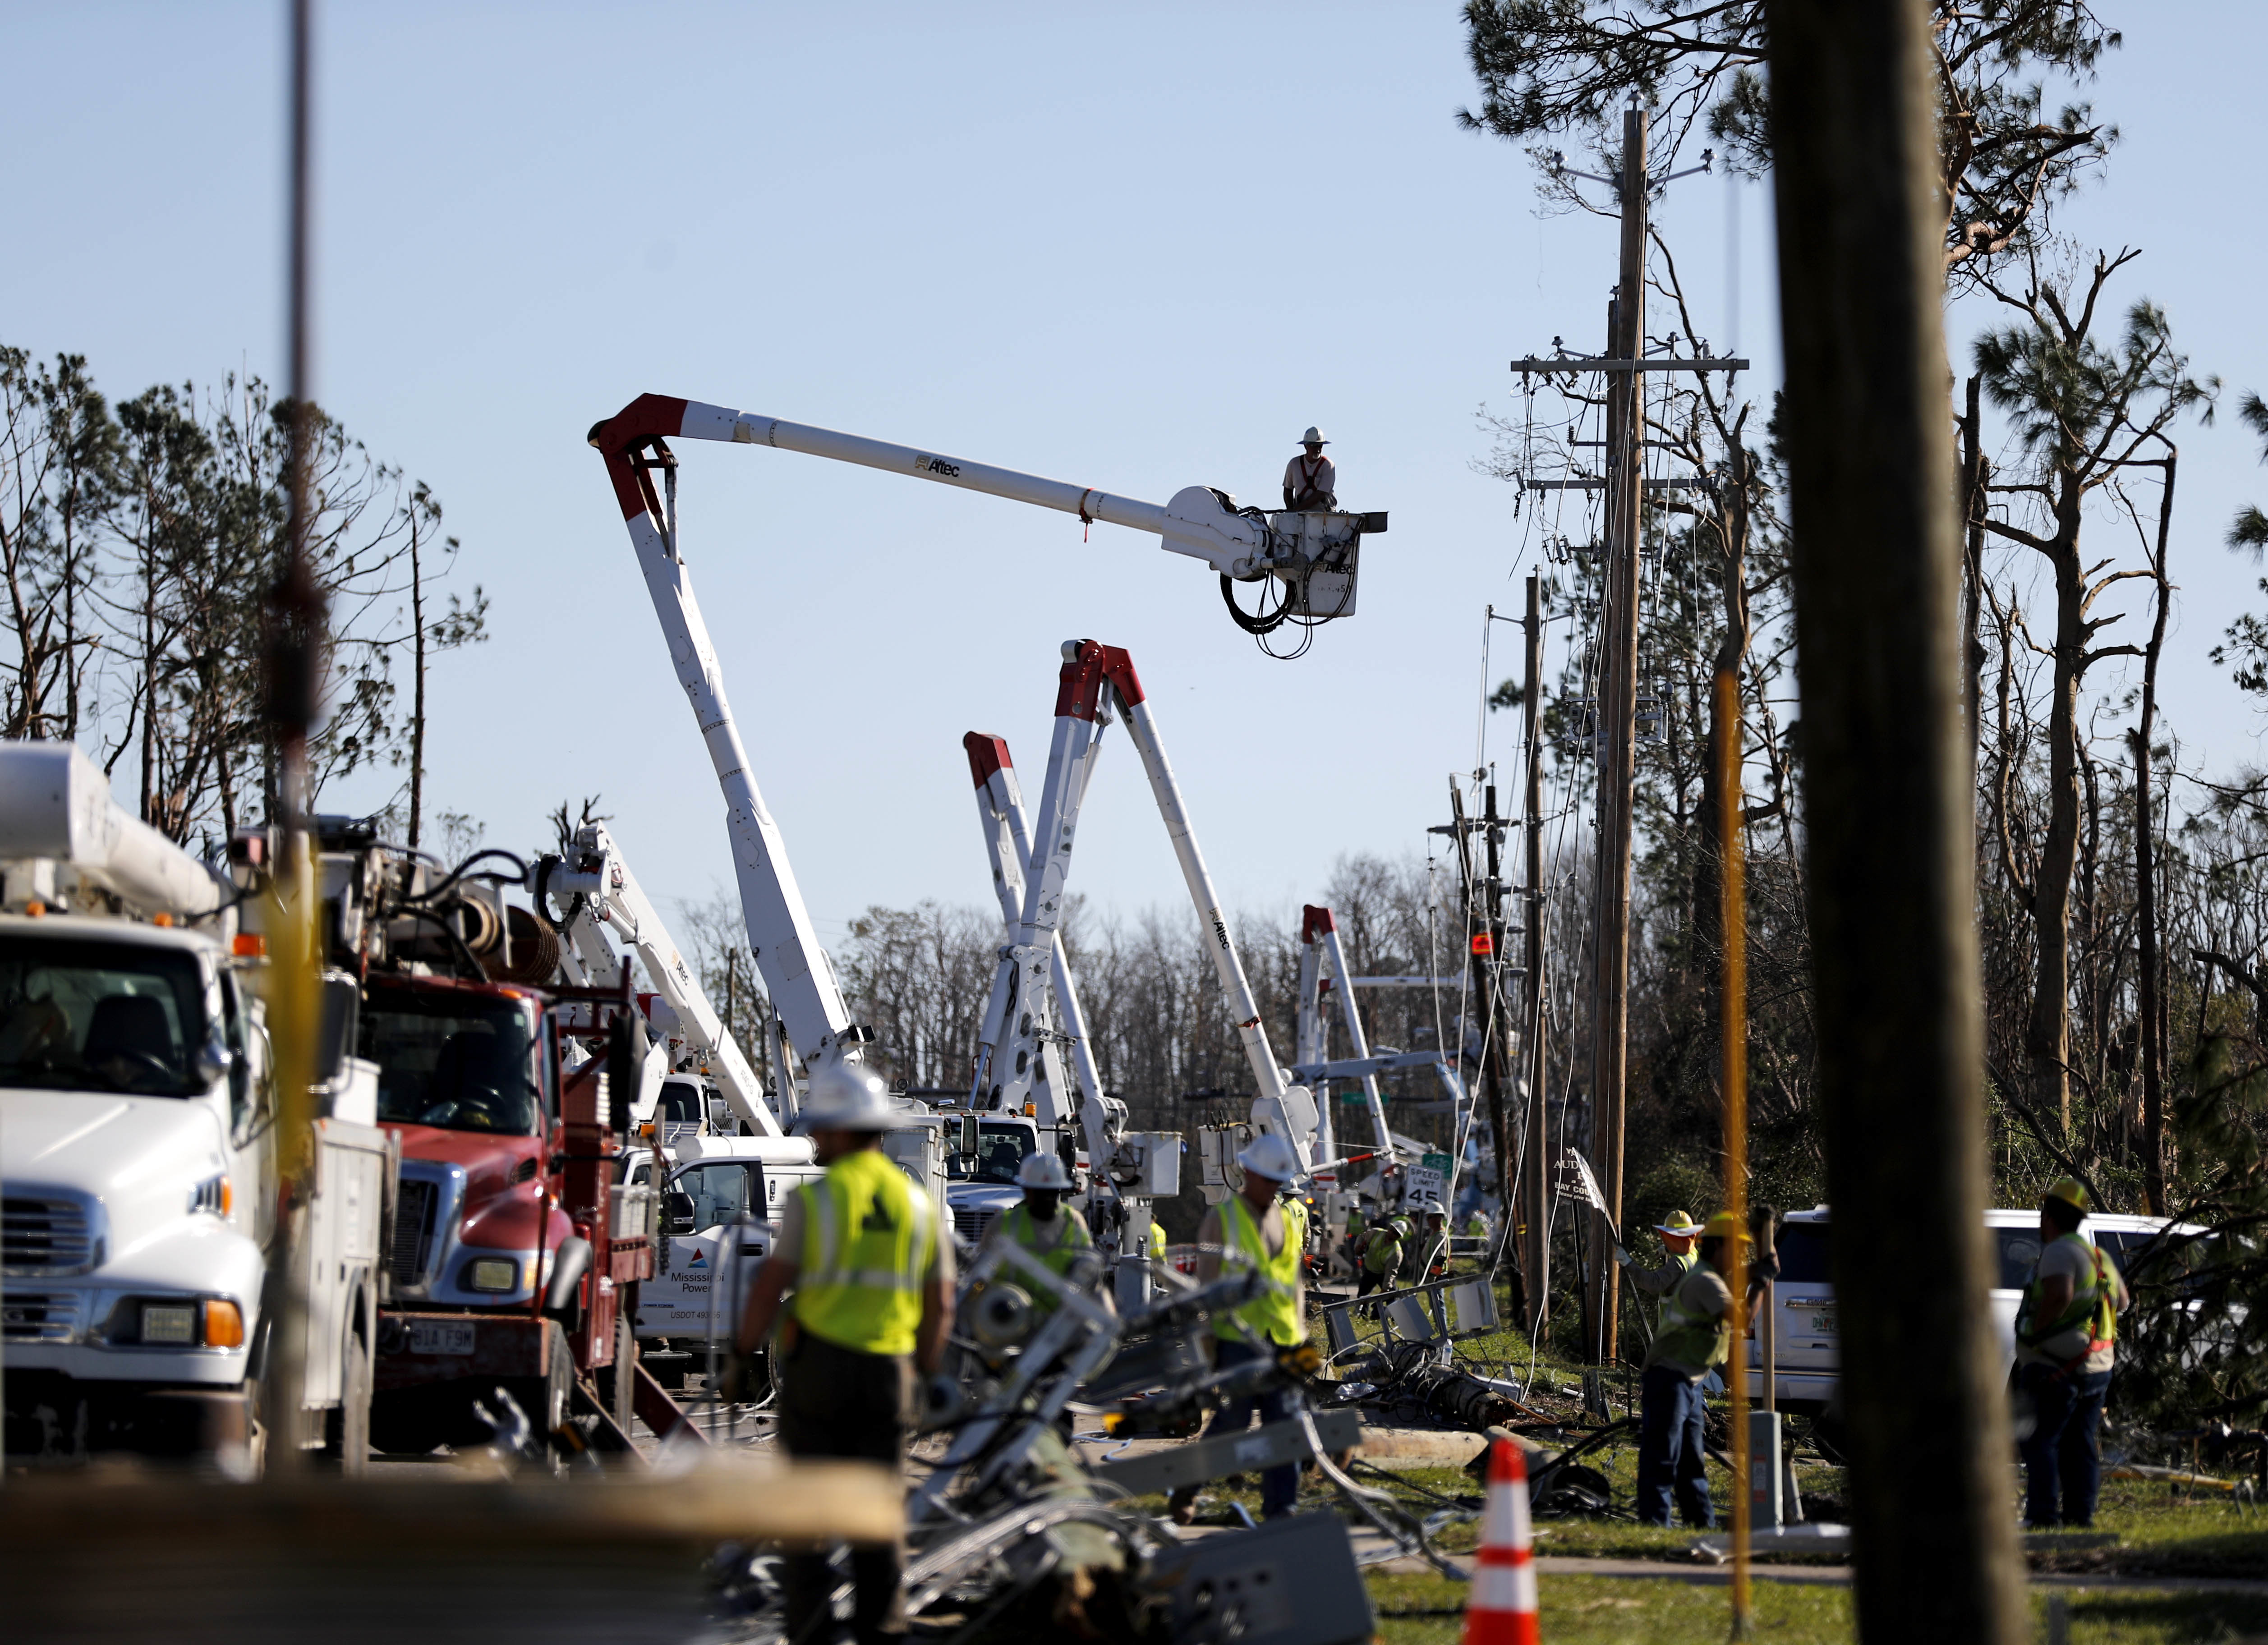 Crews work to restore power in the aftermath of Hurricane Michael in Panama City, Fla., Oct. 13, 2018.